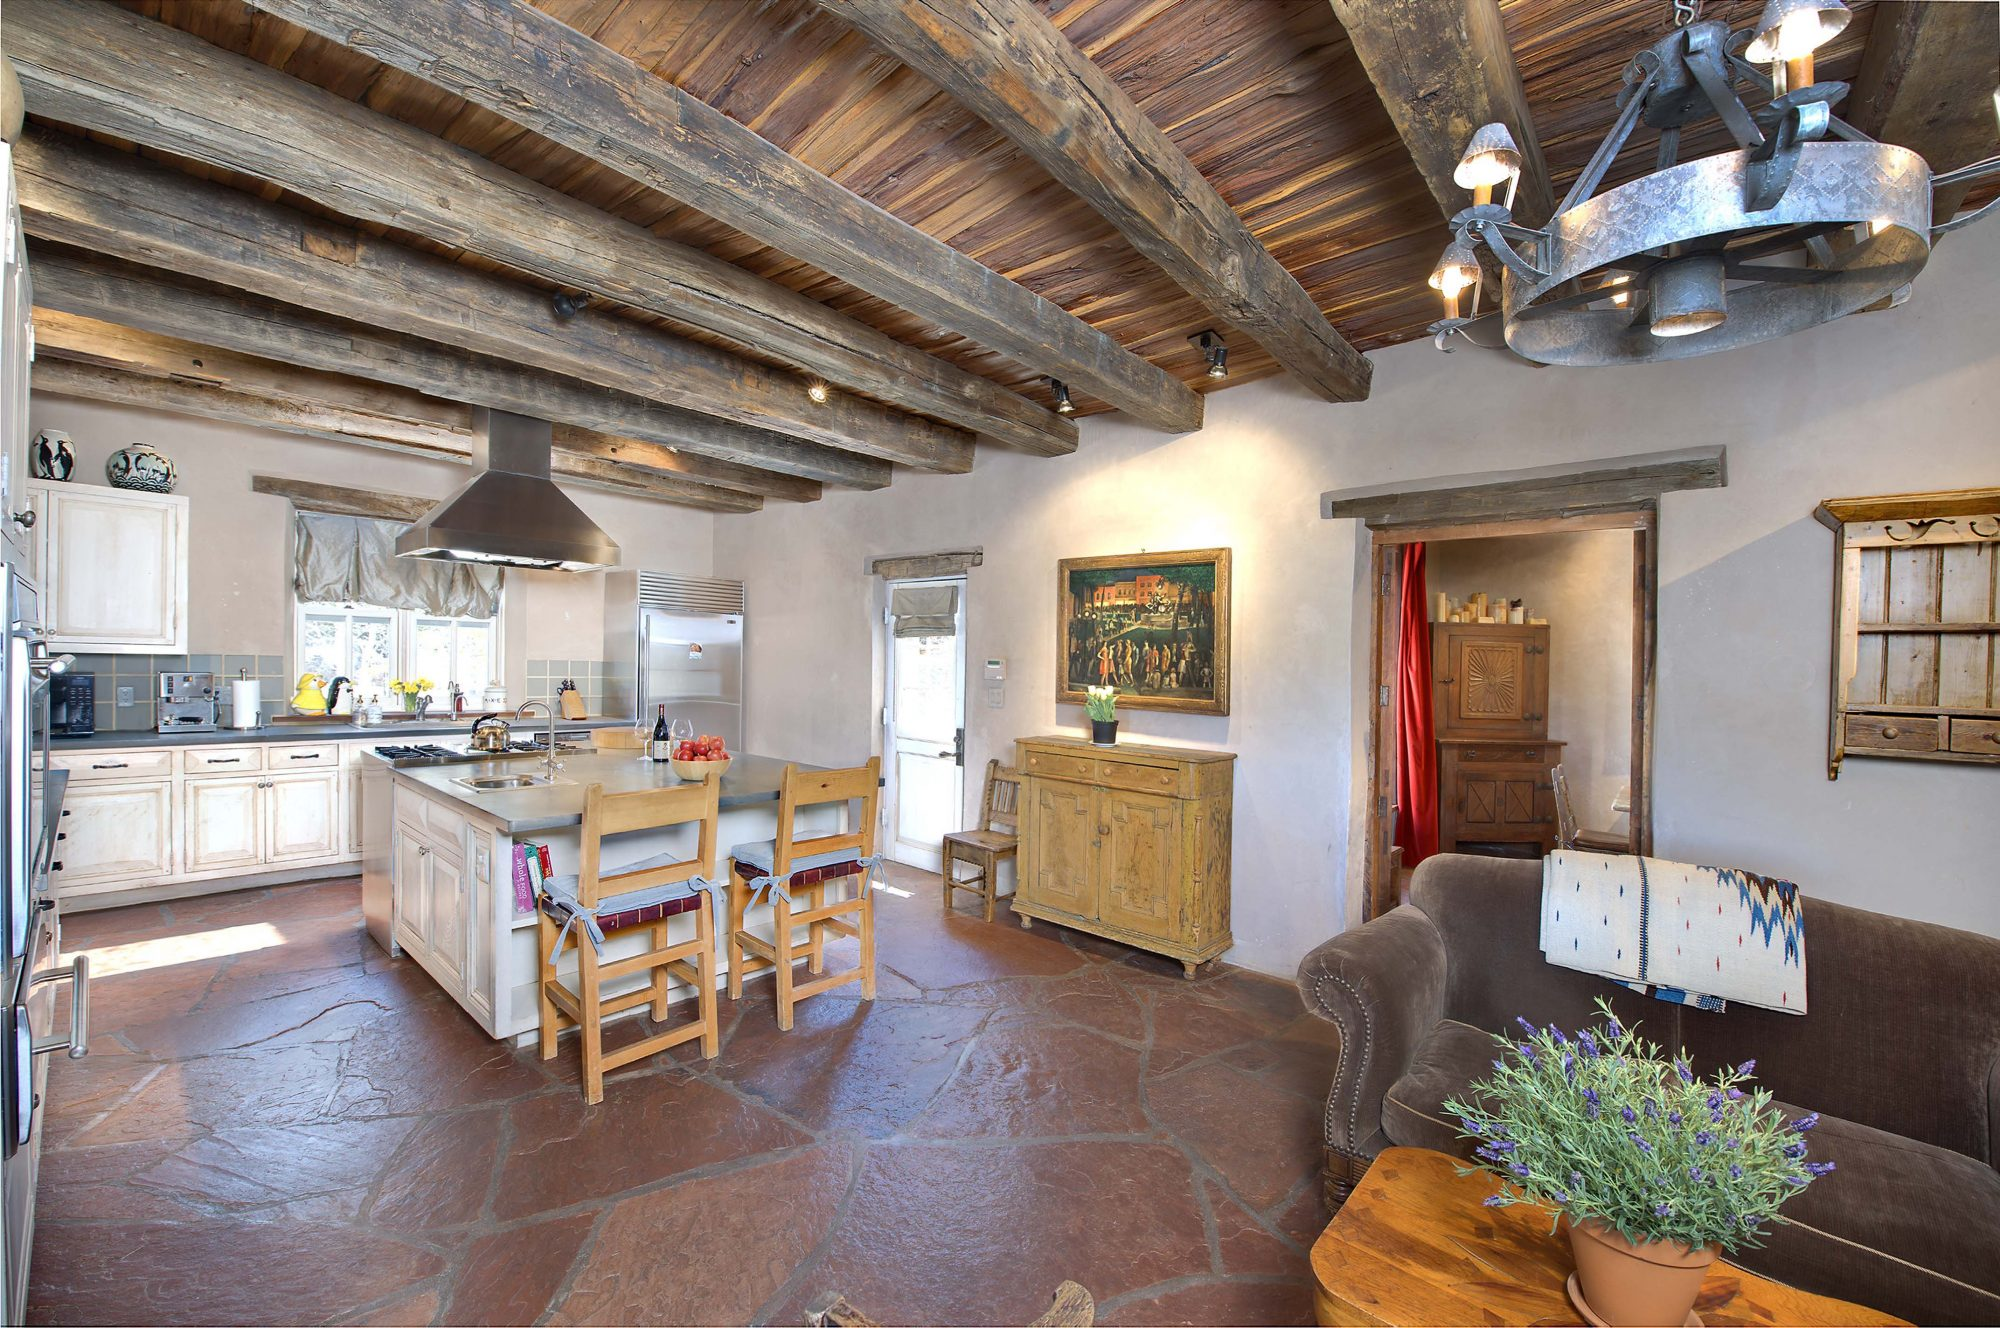 Camino Militar Classic Adobe Home And Guest House On The - Adobe home design